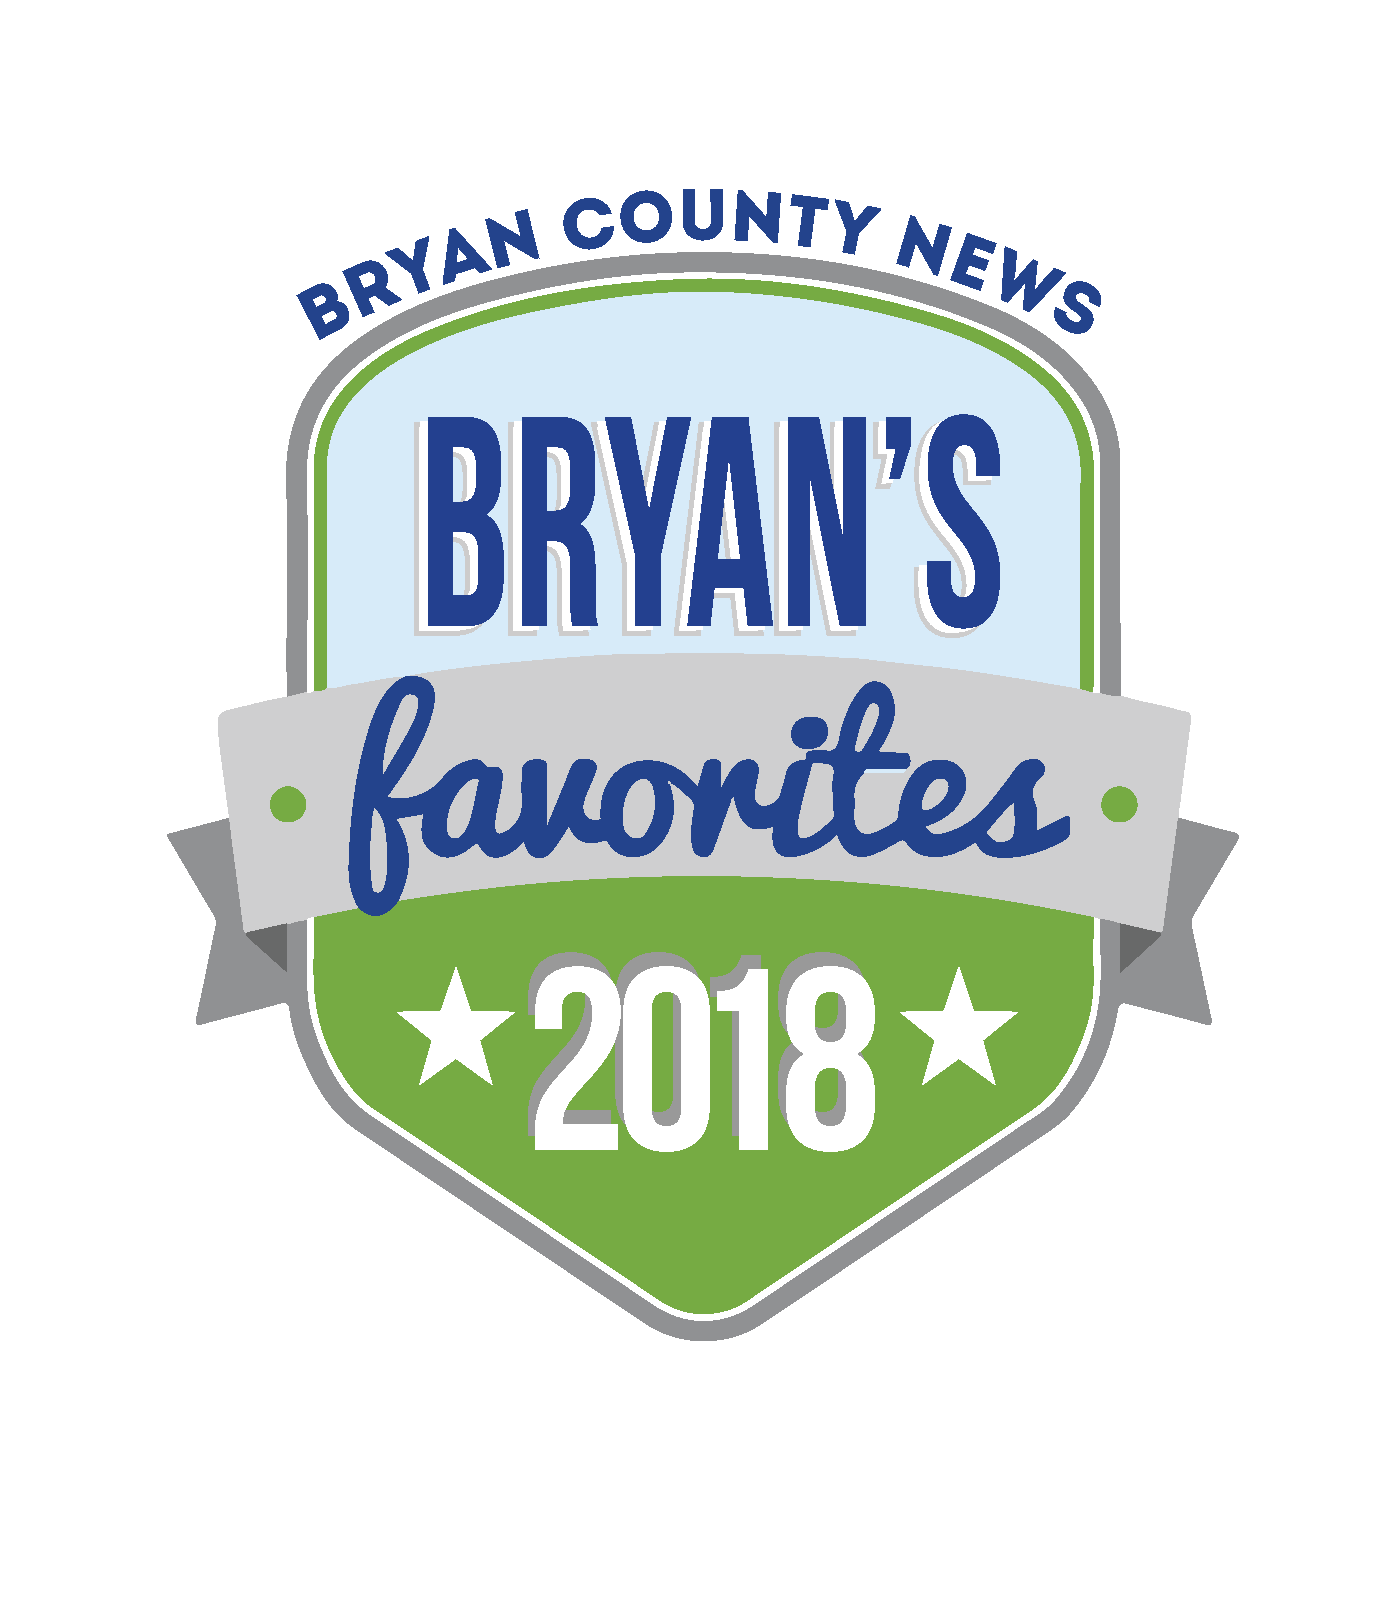 Richmond Hill Office Honored in Bryan's Favorites 2018